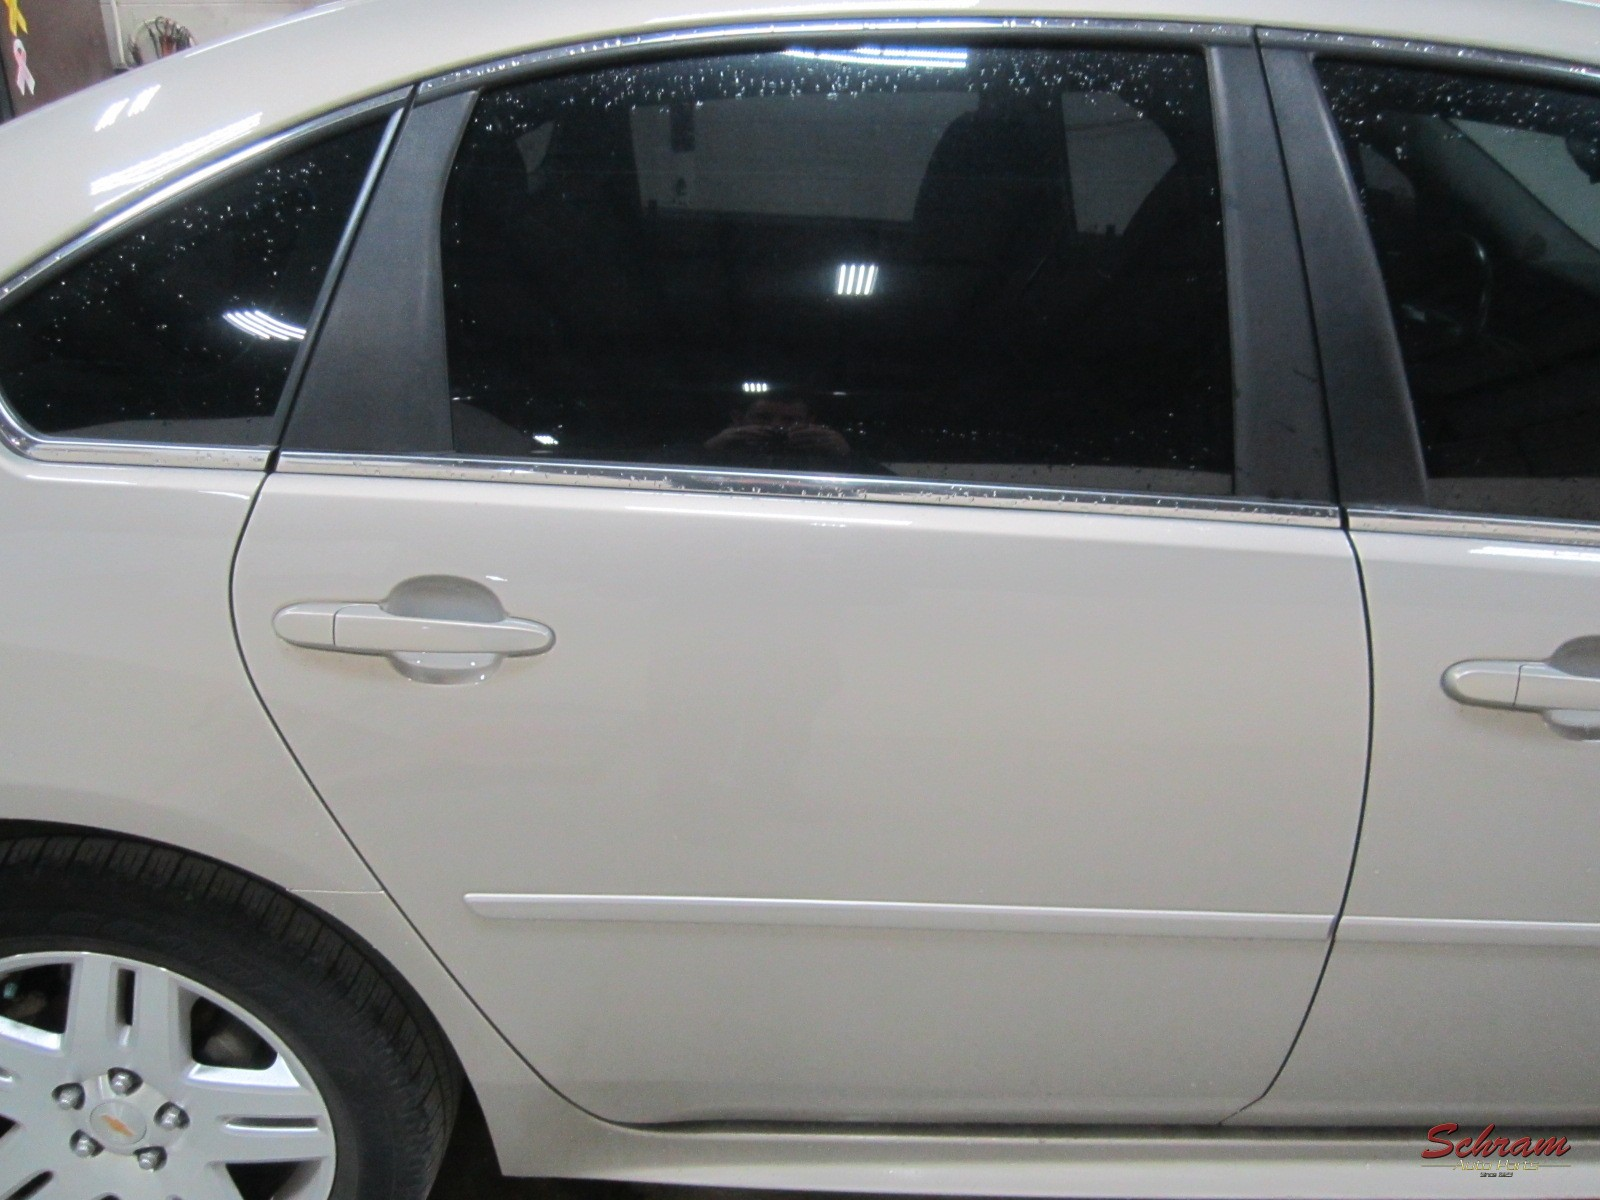 2011 IMPALA Door Assy, Rear R.